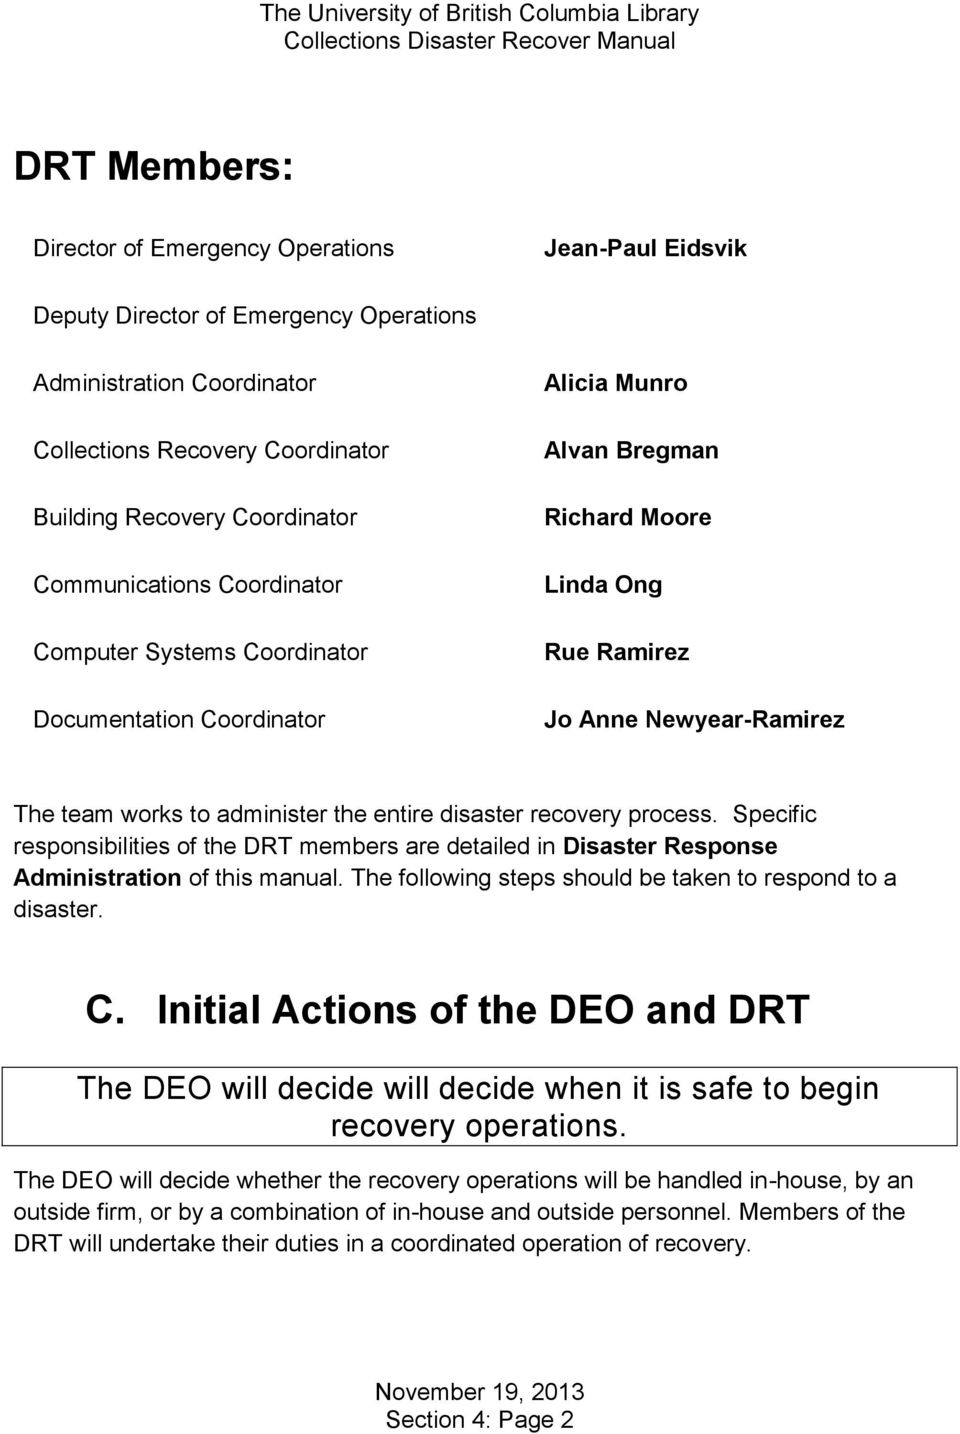 the entire disaster recovery process. Specific responsibilities of the DRT members are detailed in Disaster Response Administration of this manual.